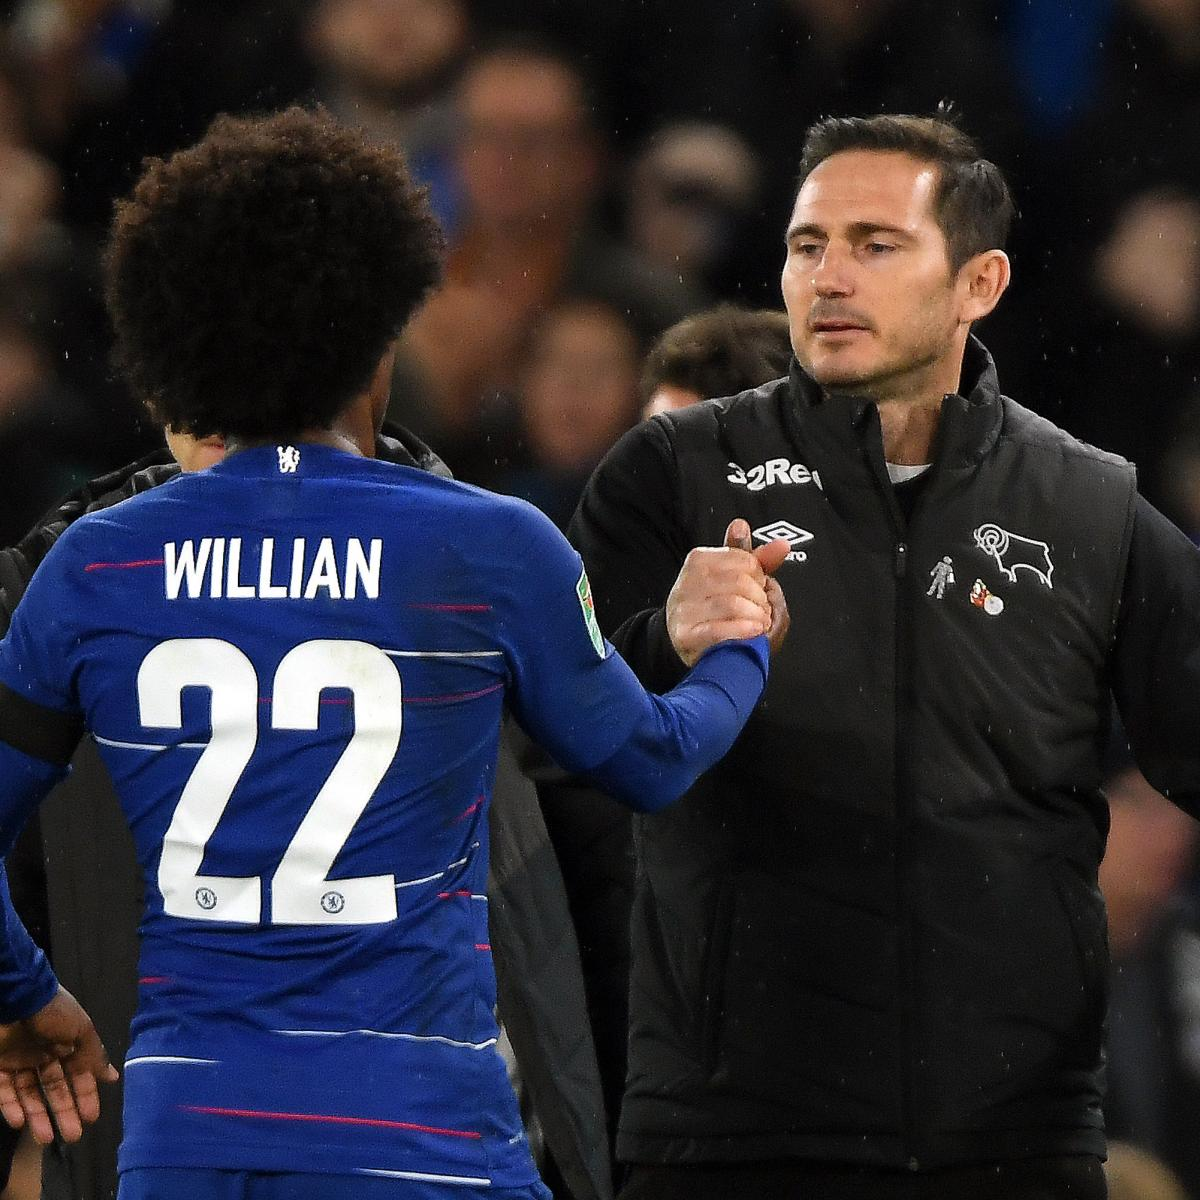 Chelsea Fc Latest News: Willian Says Frank Lampard Would Be 'Up To The Task' Of